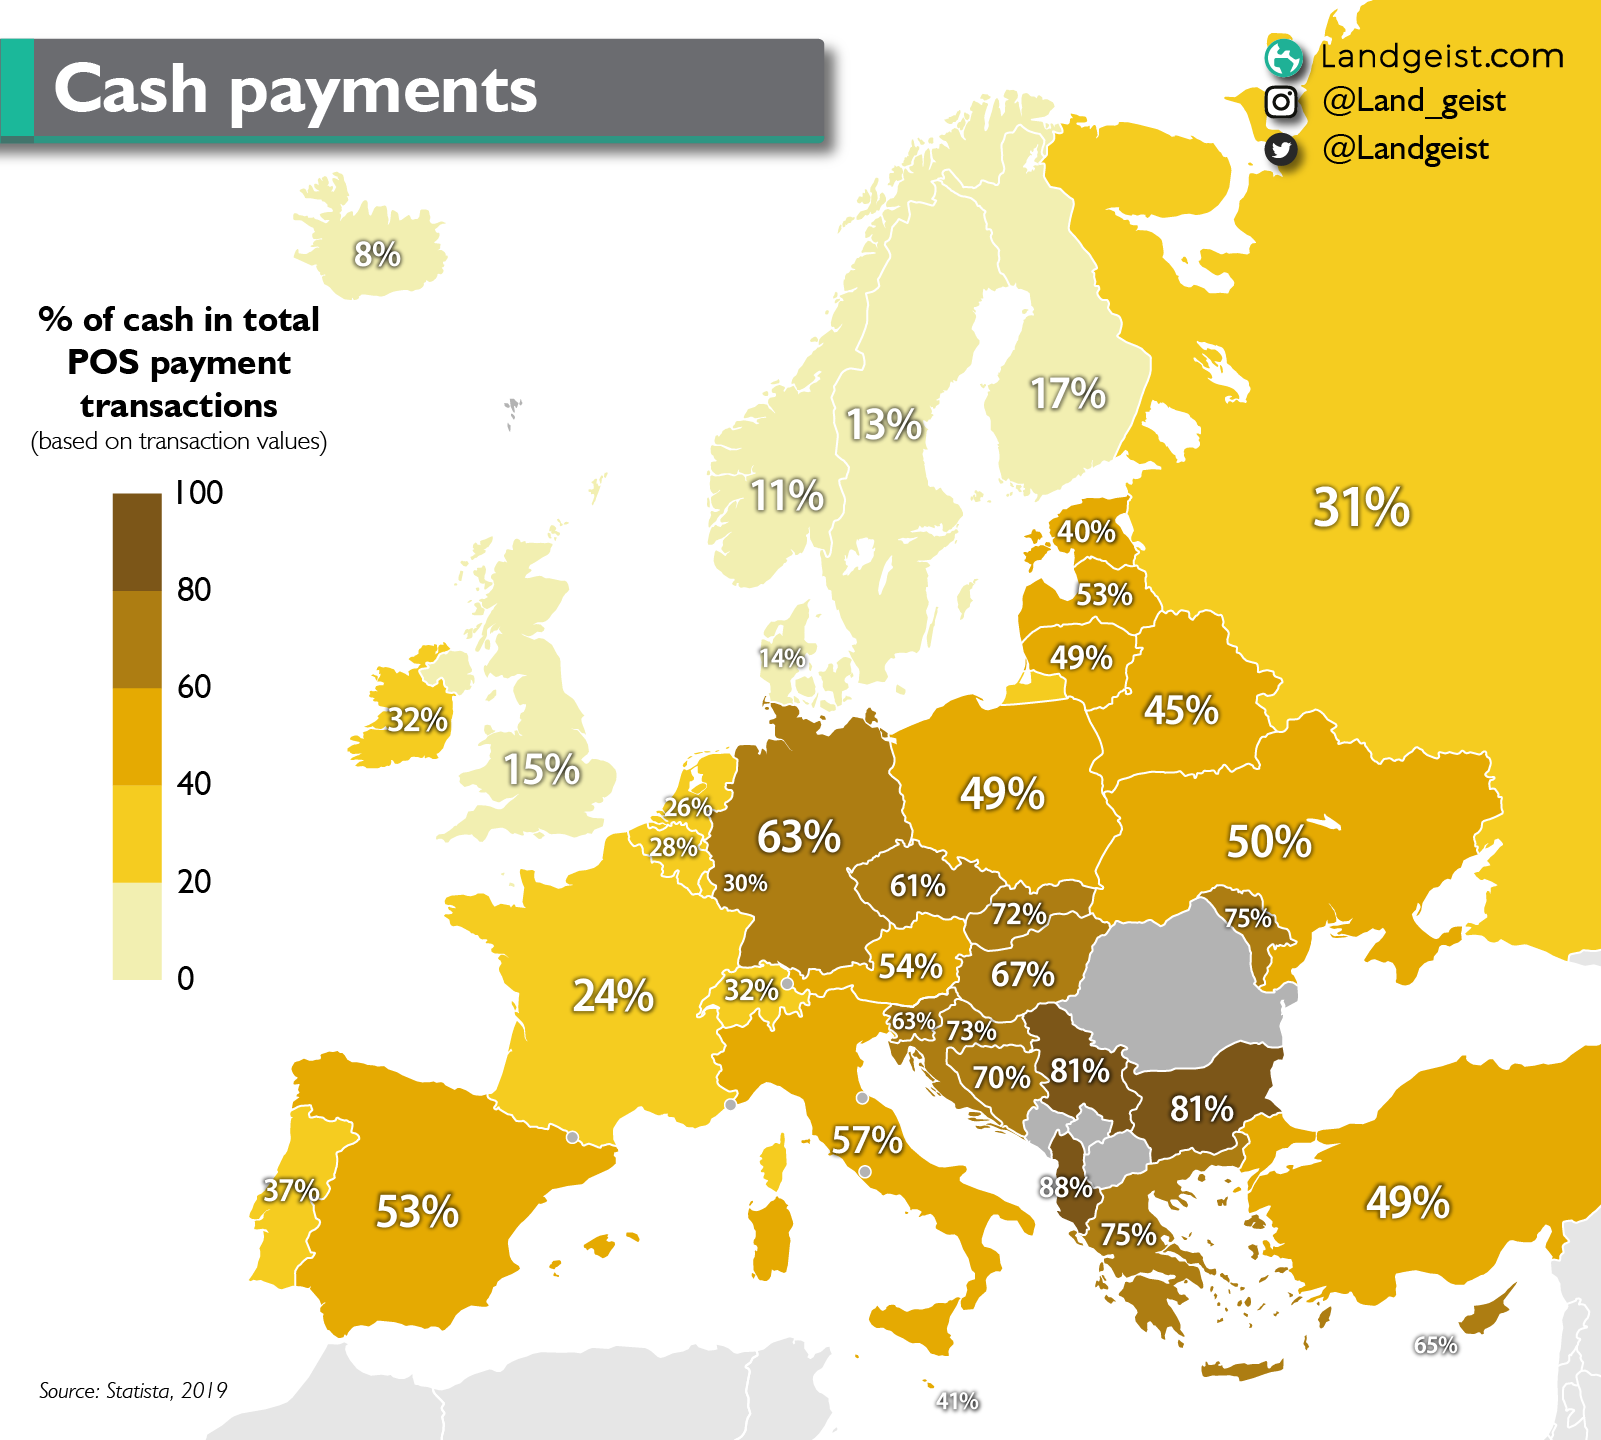 Map showing the percentage of cash transactions per country in Europe.